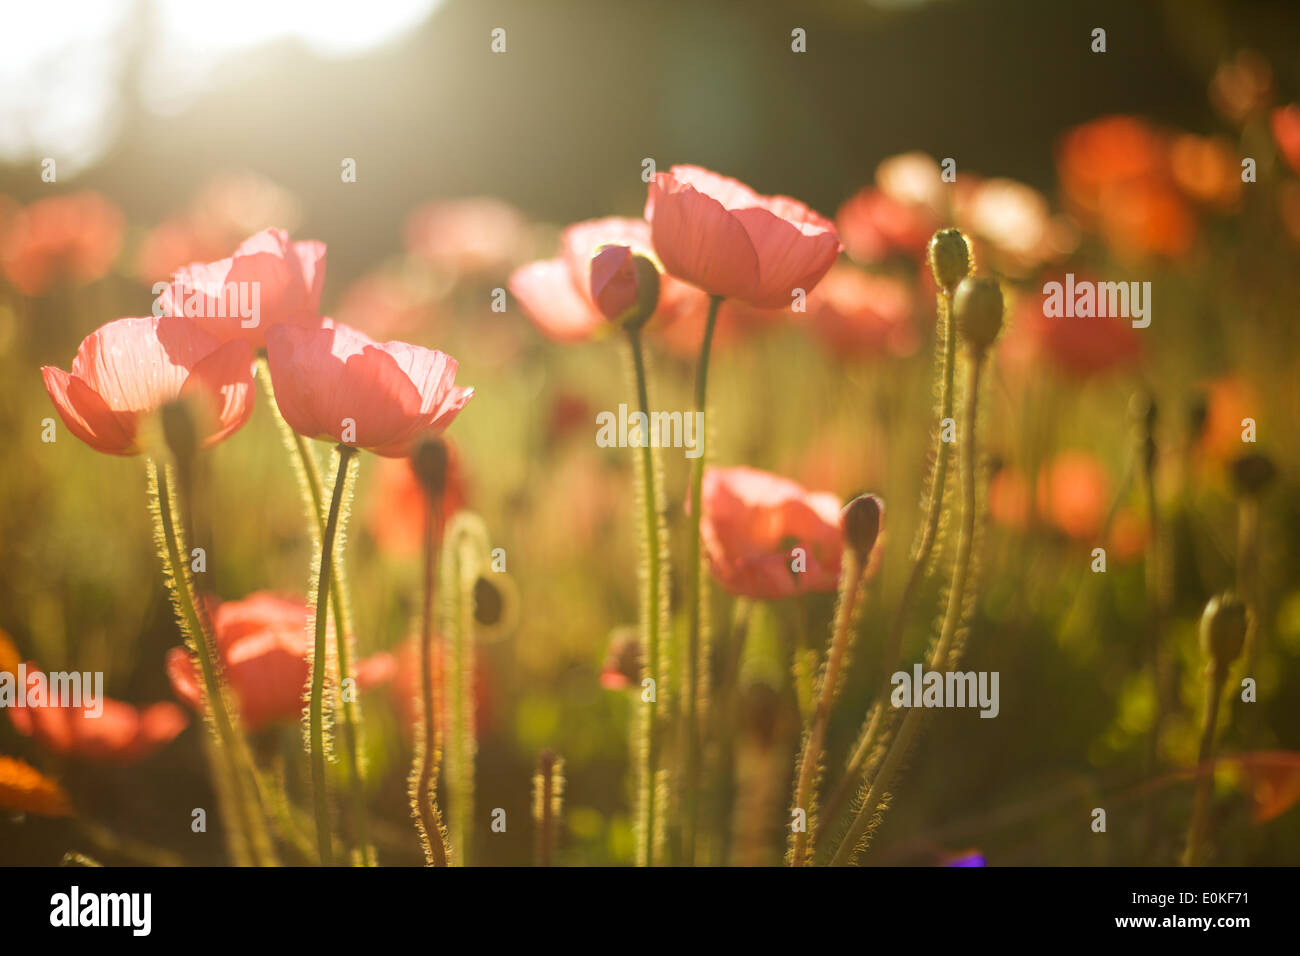 Red poppies grow in a field bathed in afternoon light. Stock Photo